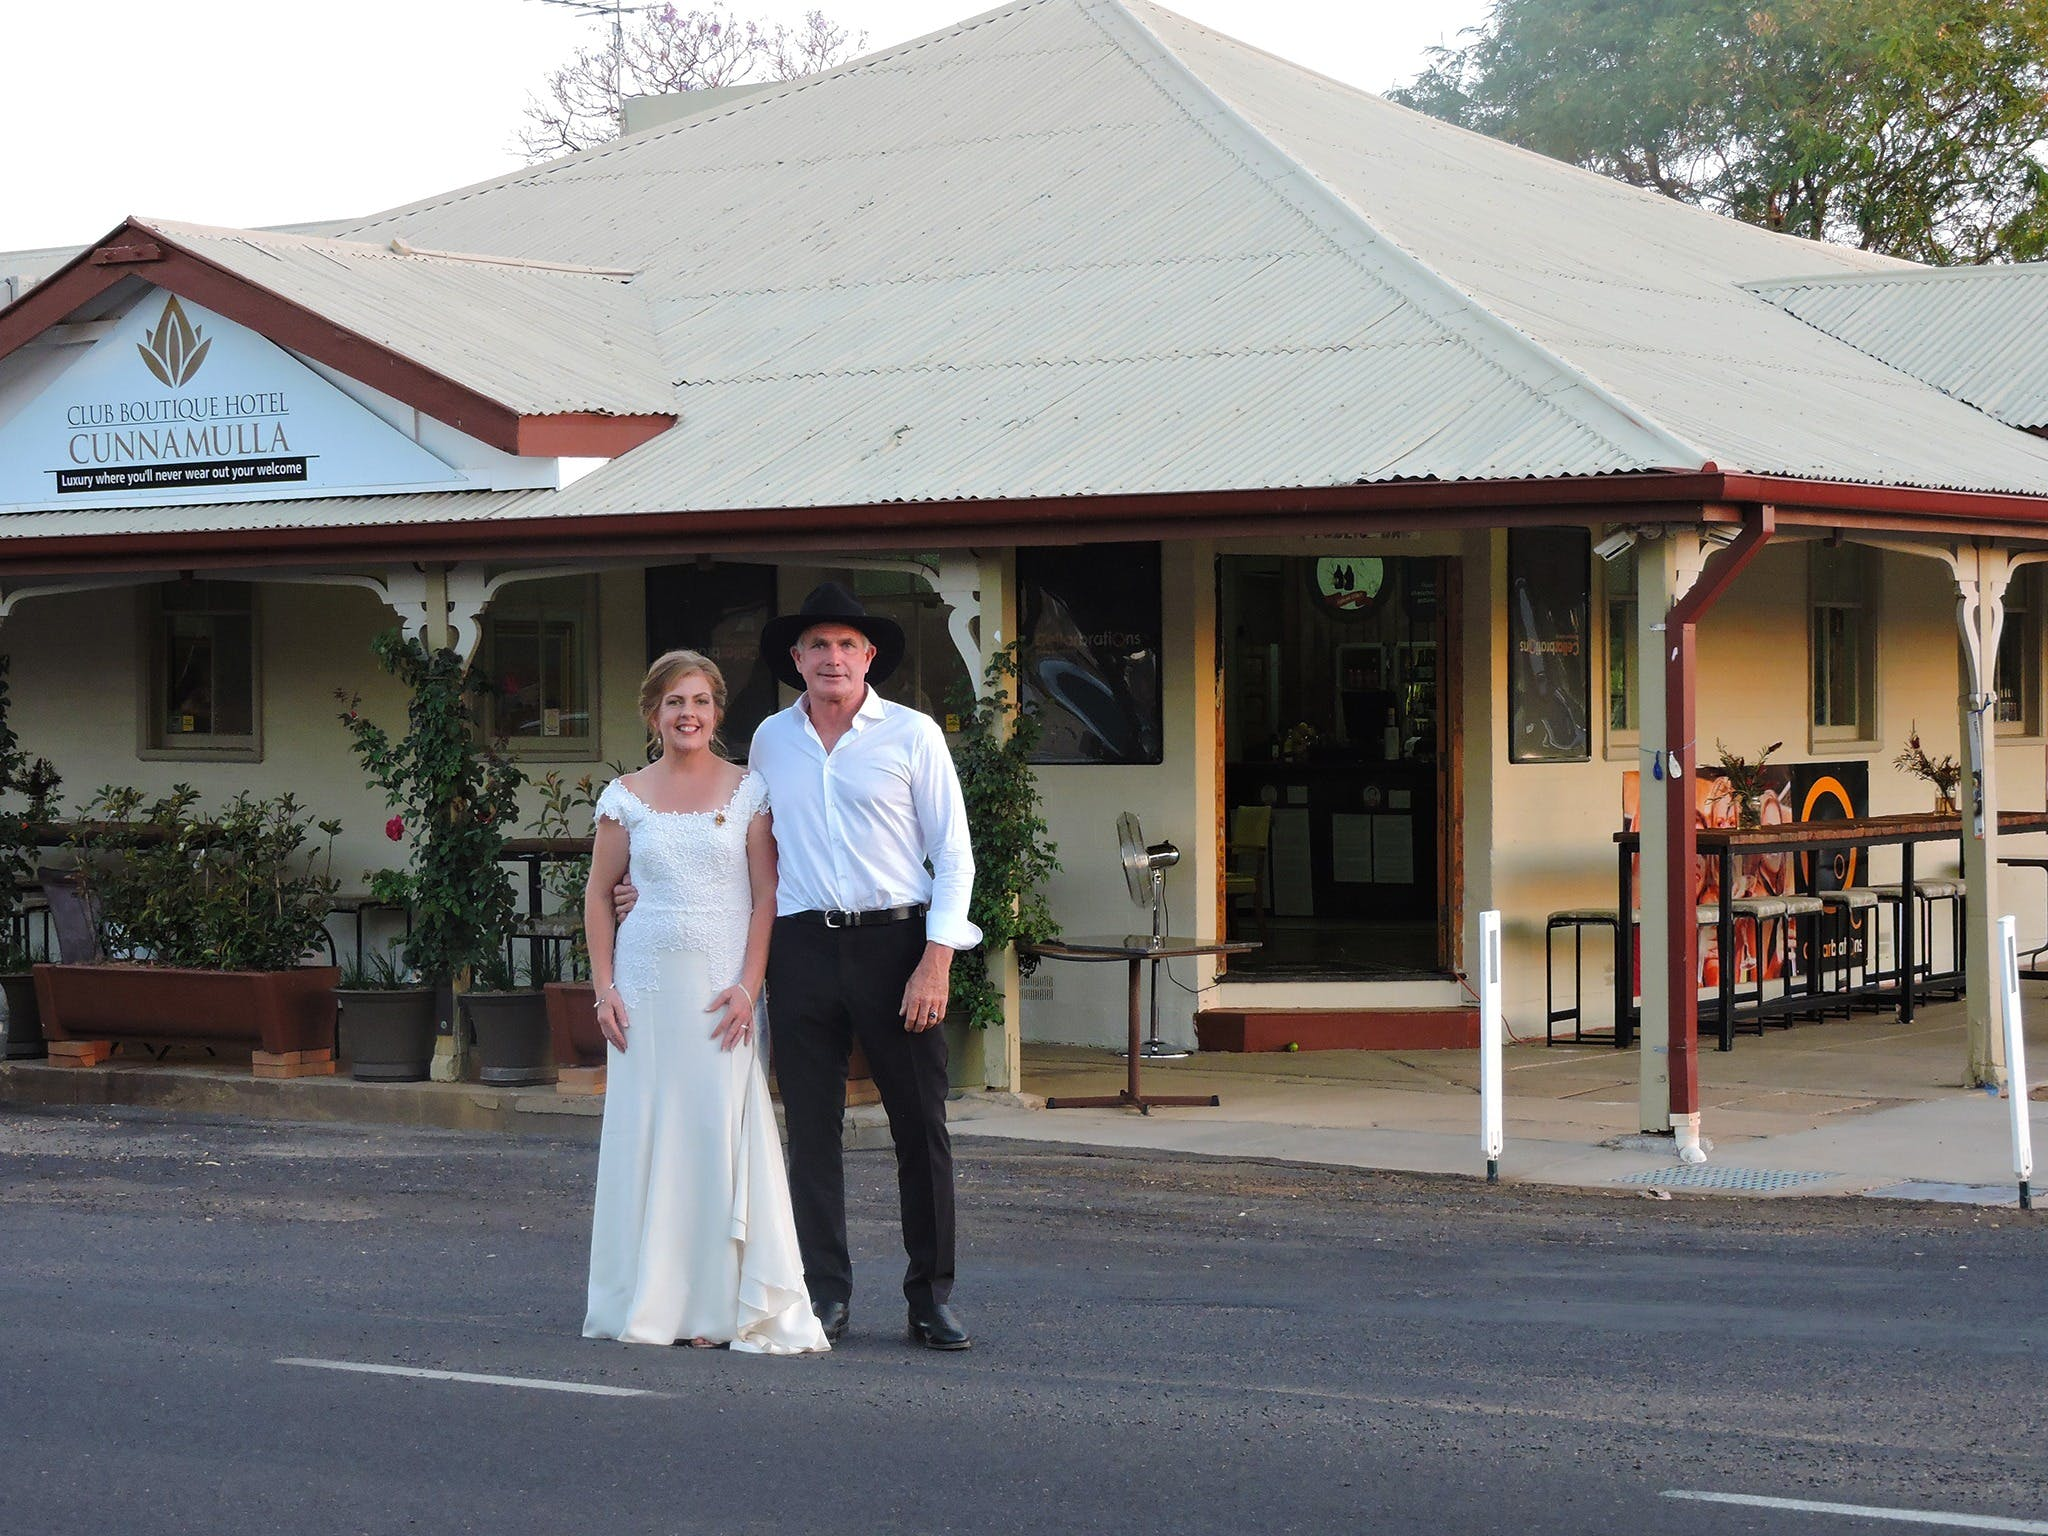 Club Boutique Hotel Cunnamulla - Mount Gambier Accommodation